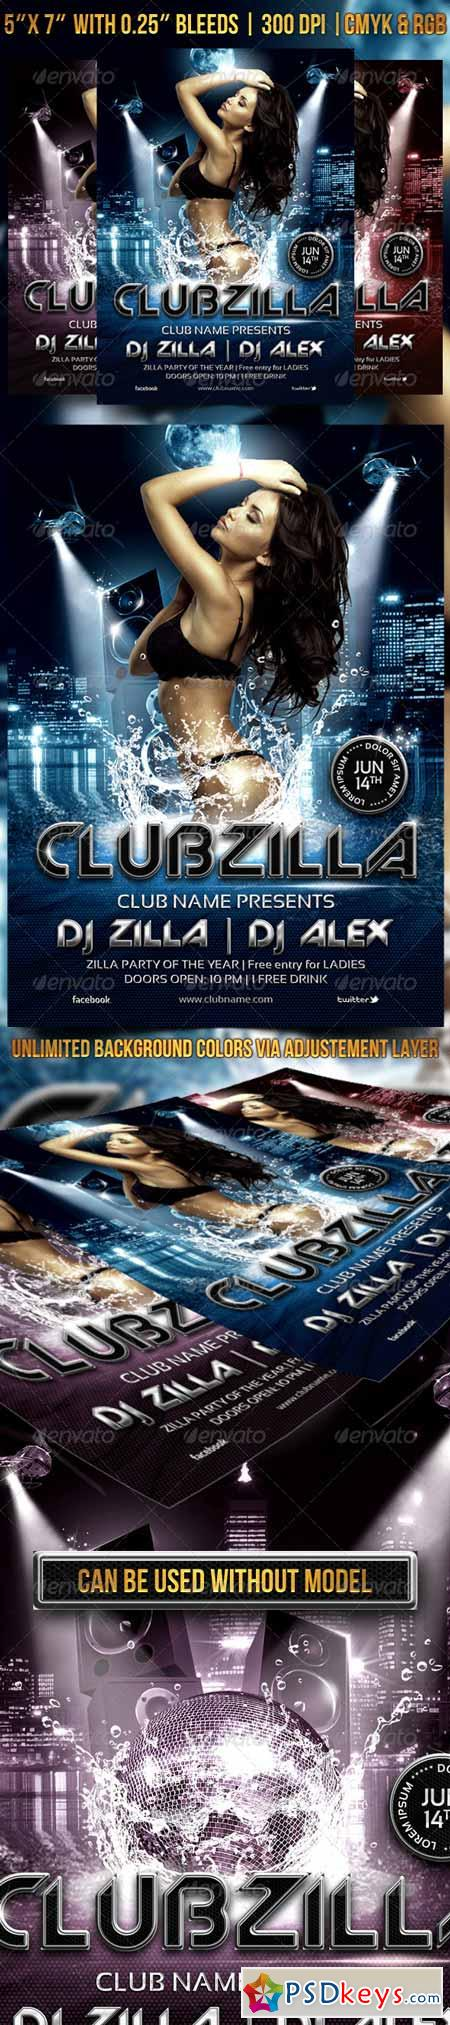 Clubzilla Party Flyer 7027399